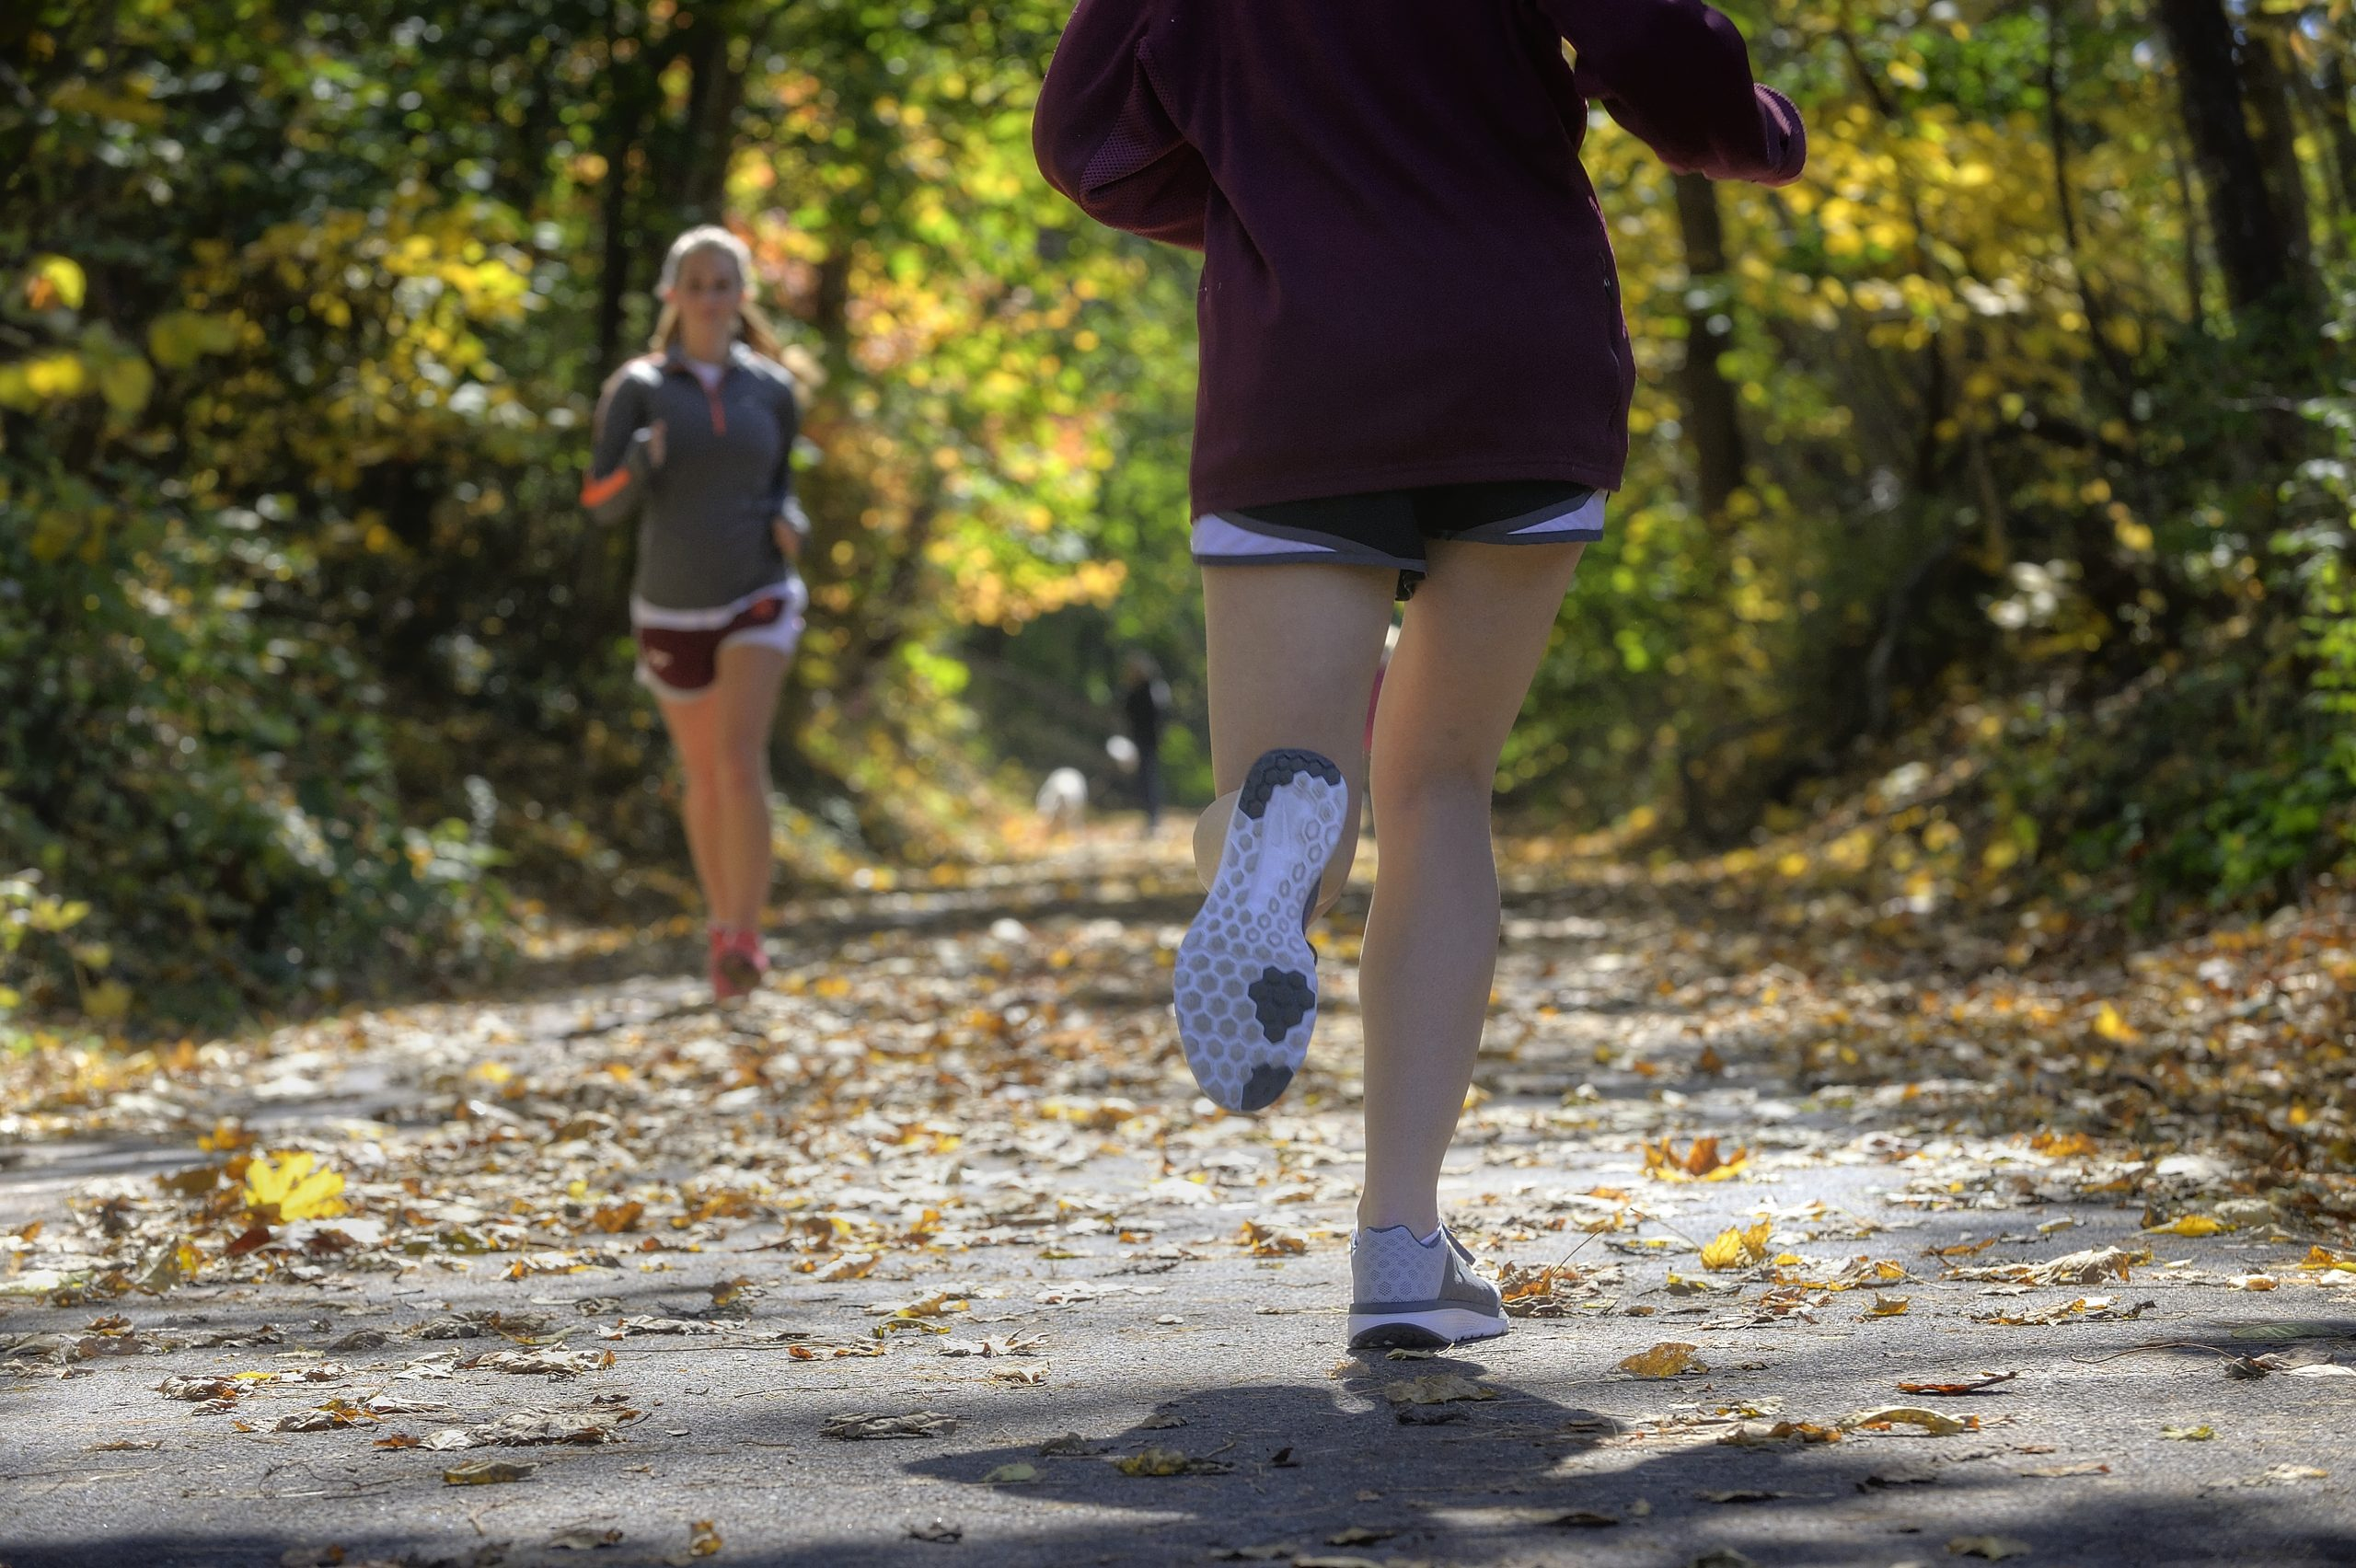 Virginia's New River Valley Trail Guide, Running, Hiking, Outdoors